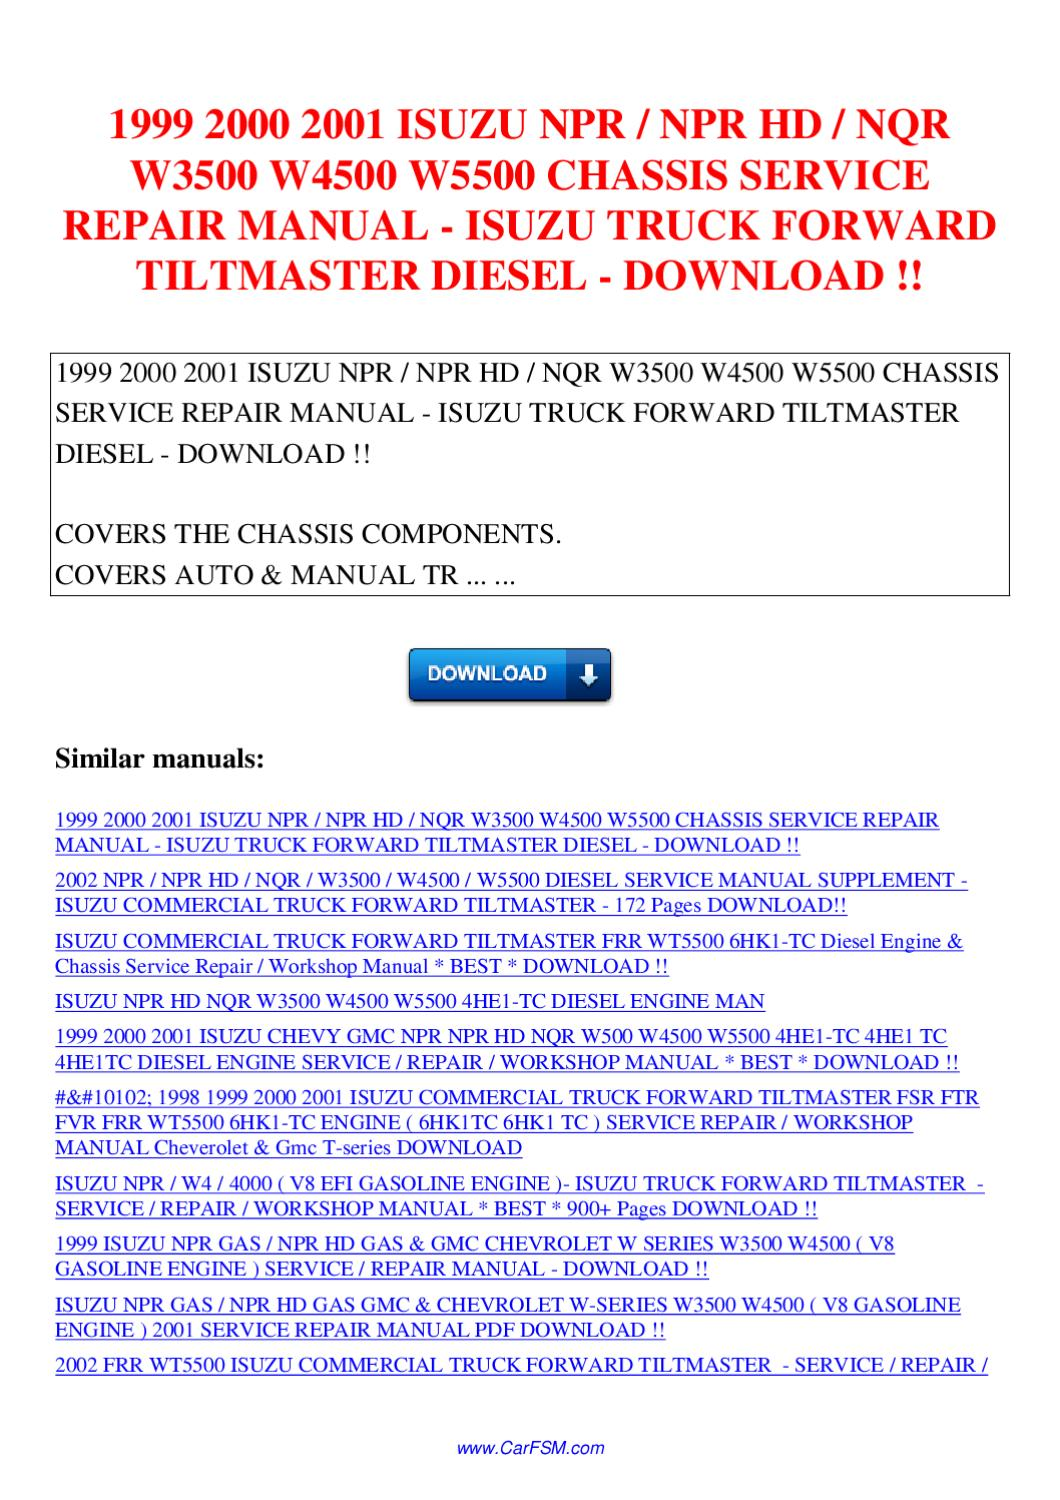 Chevrolet Wt5500 owners Manual at t on